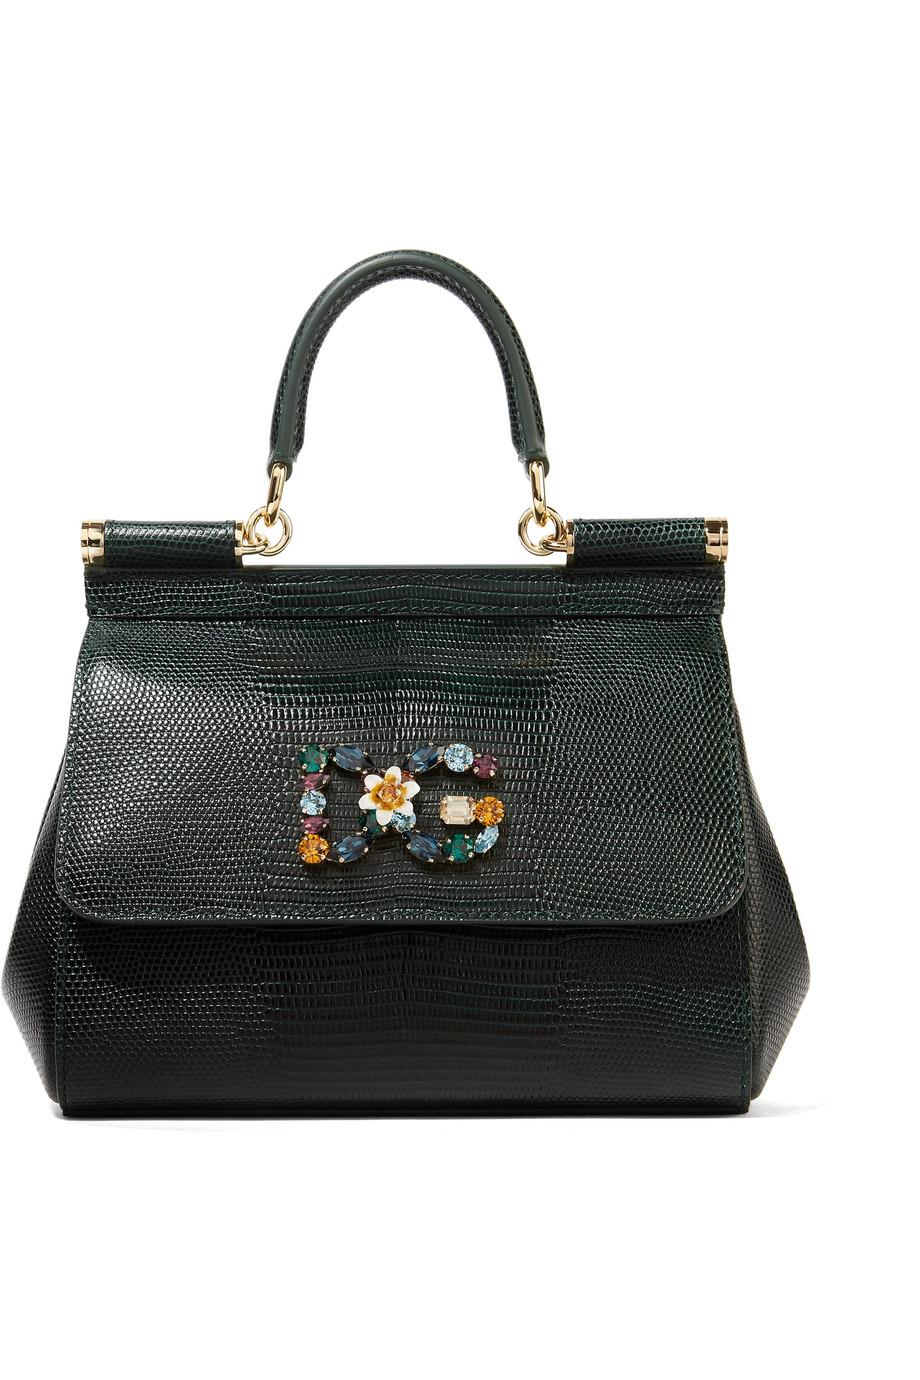 Sicily Small Embellished Lizard-effect Leather Tote - White Dolce & Gabbana 9qczRMeX5